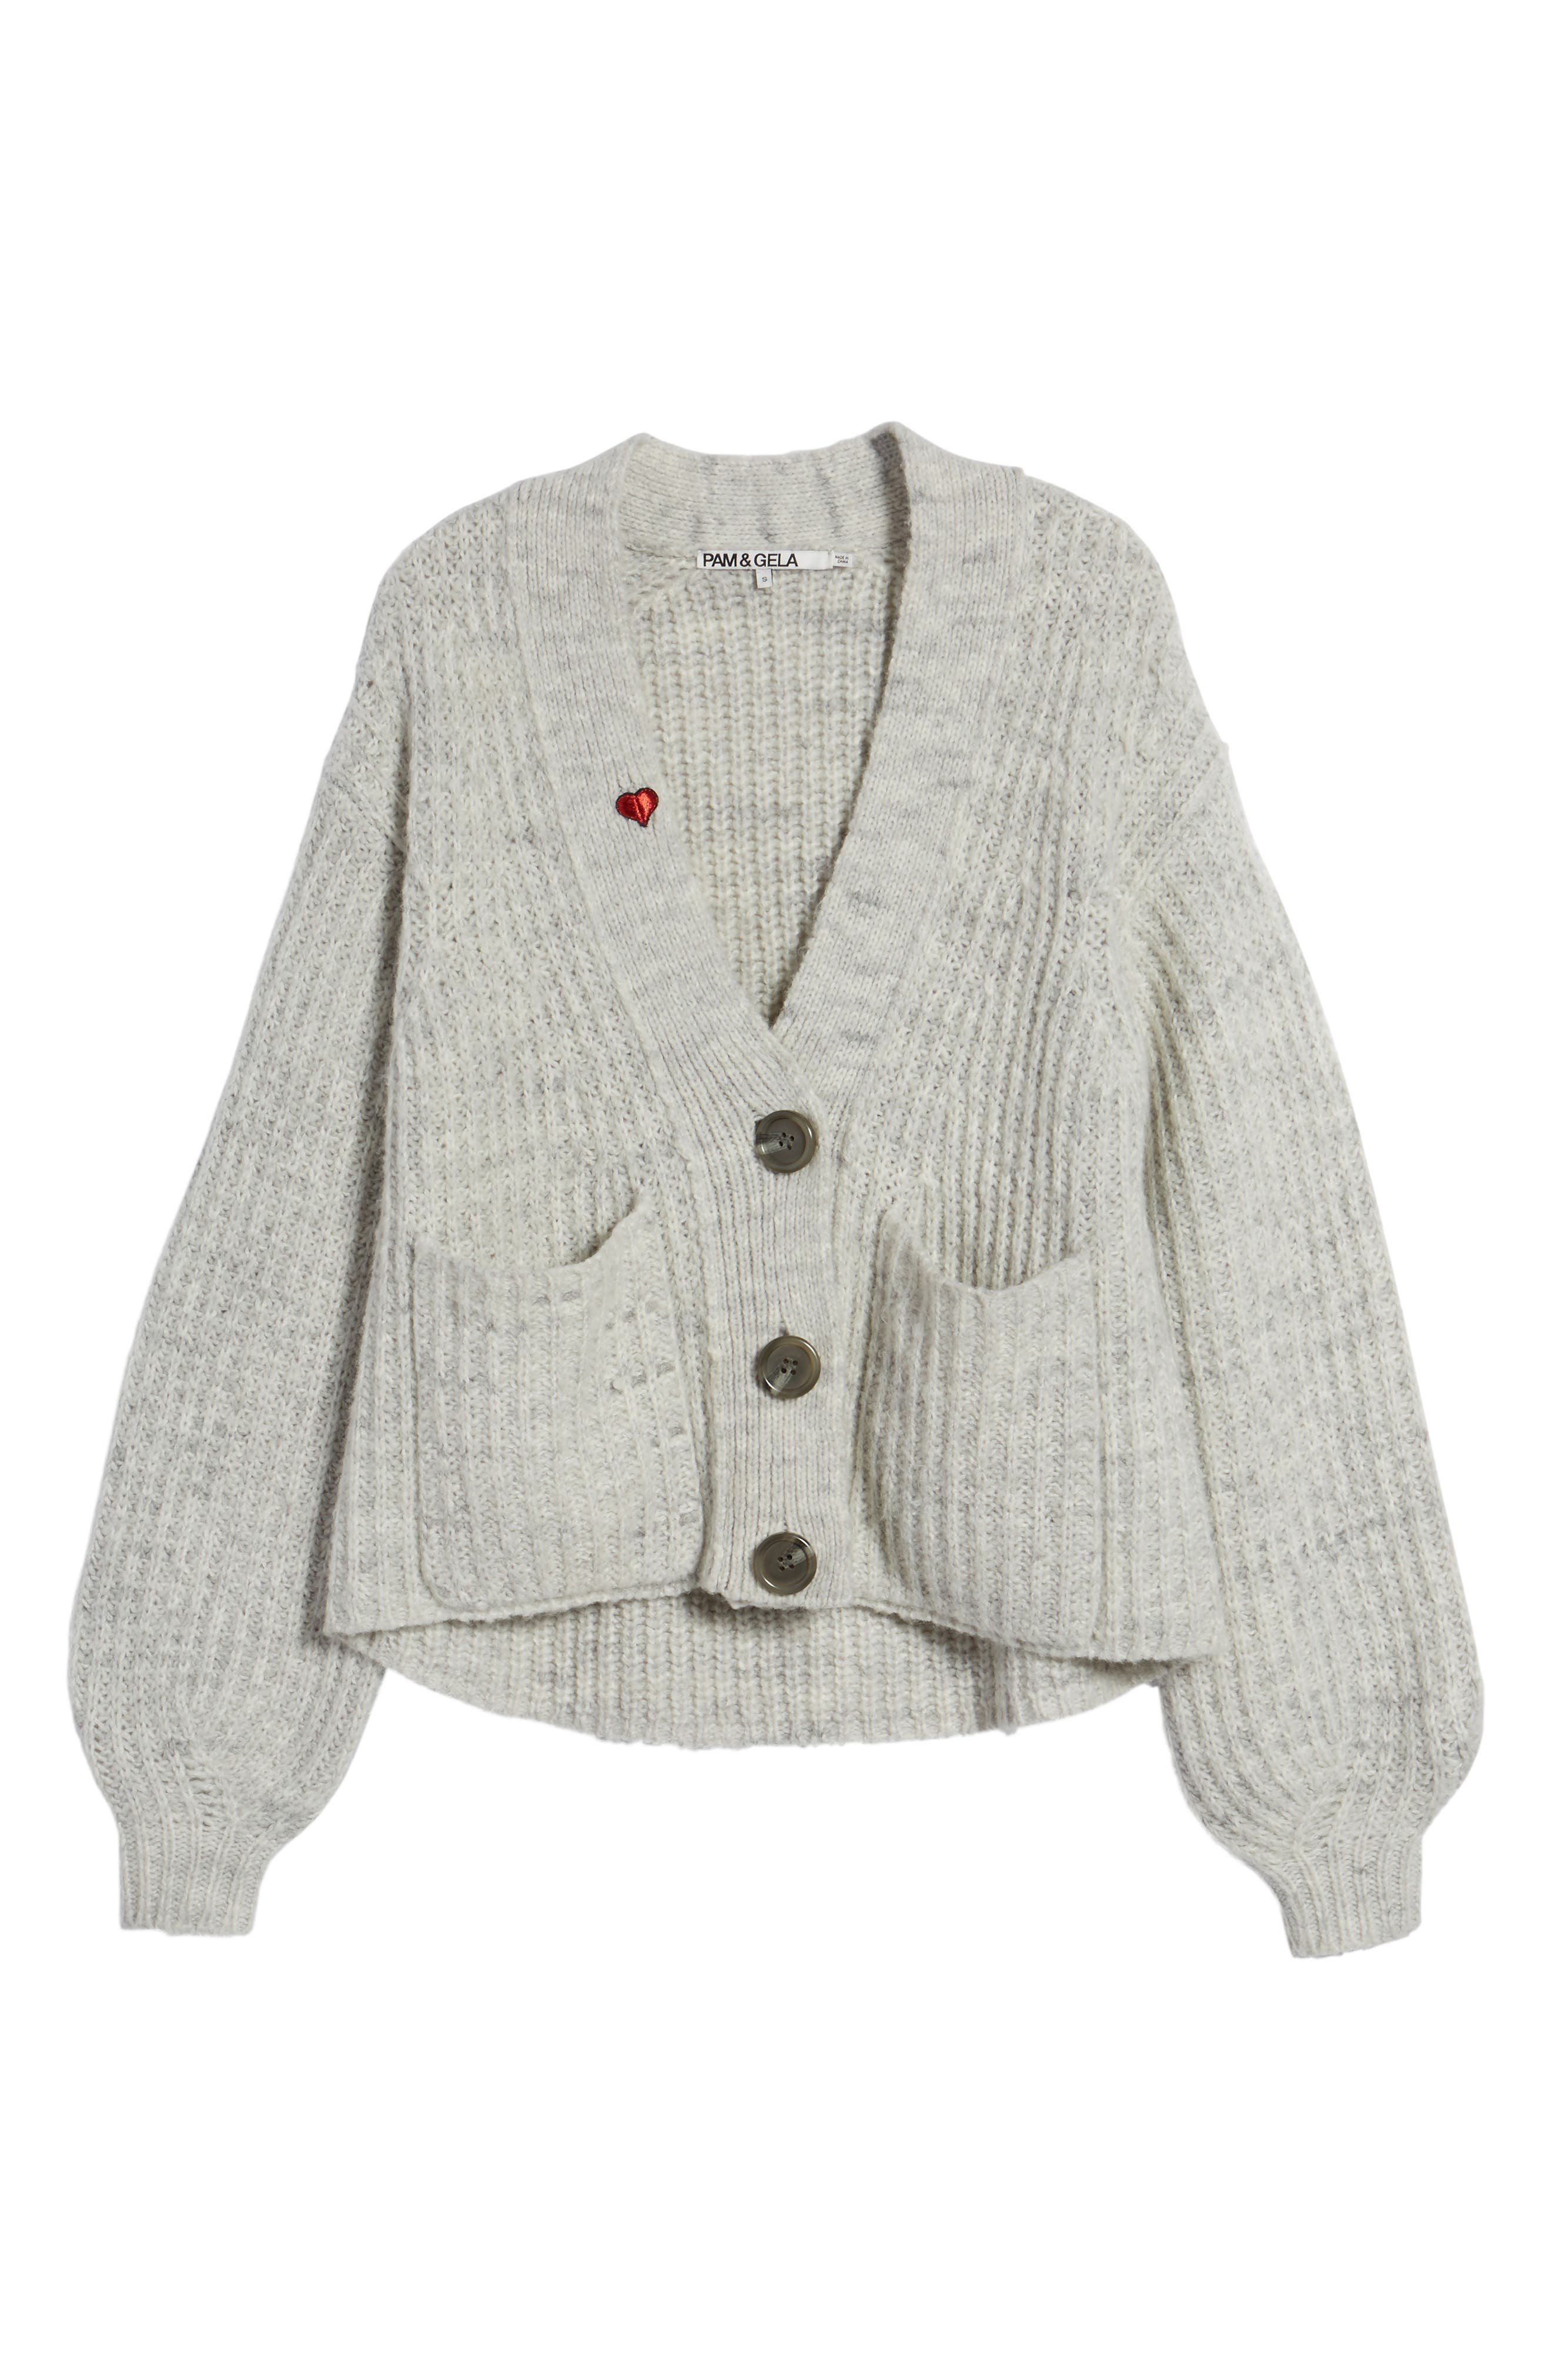 Oversize Cardigan,                             Alternate thumbnail 6, color,                             020